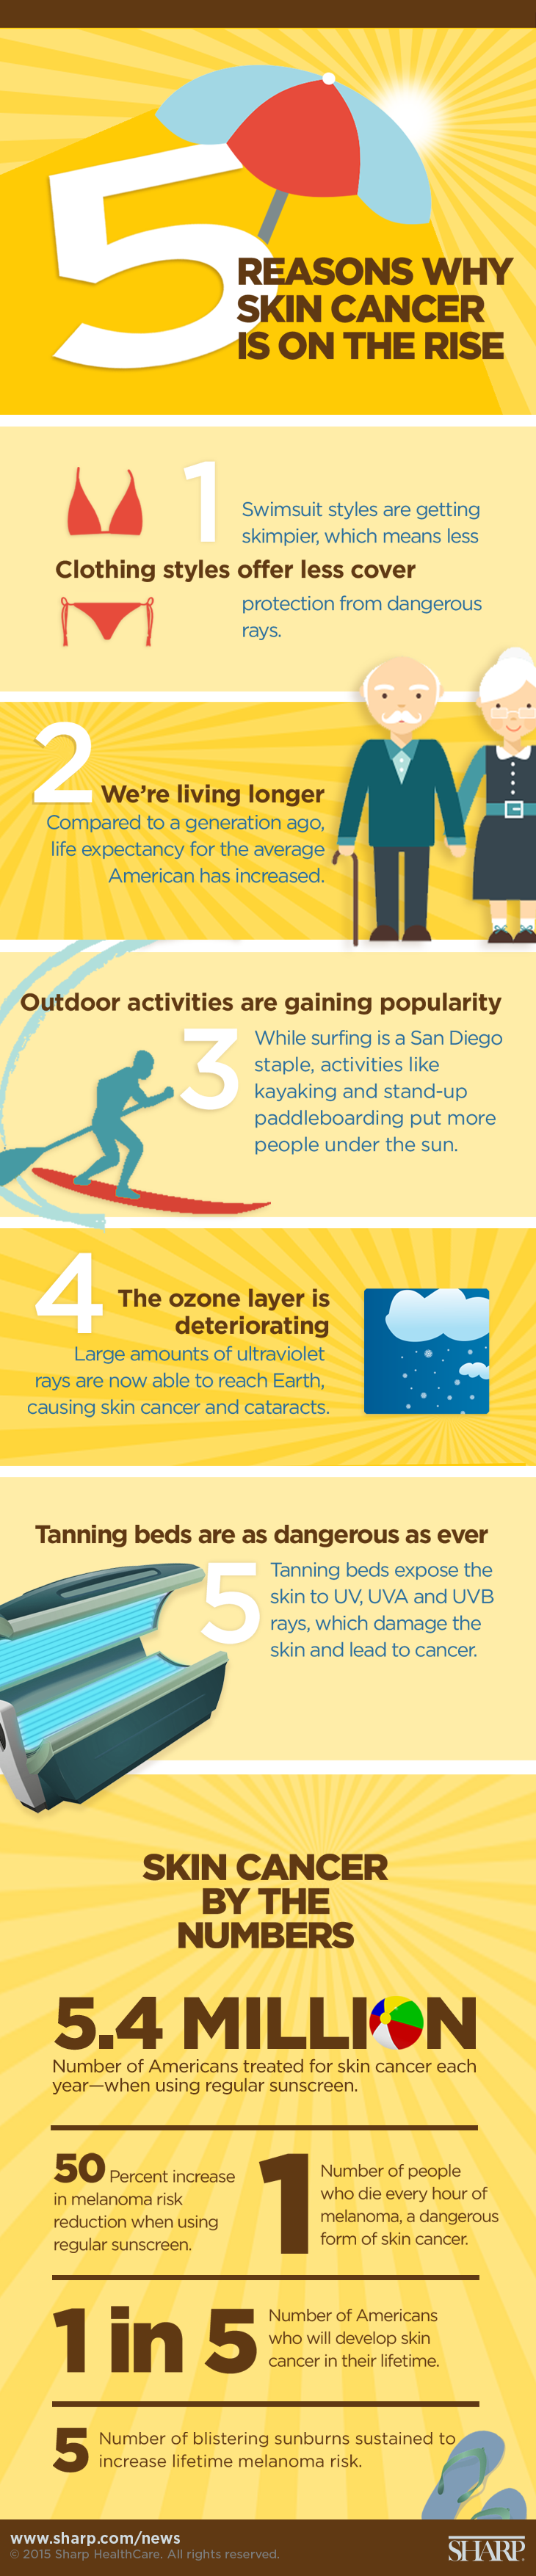 5 reasons why skin cancer is on the rise 2